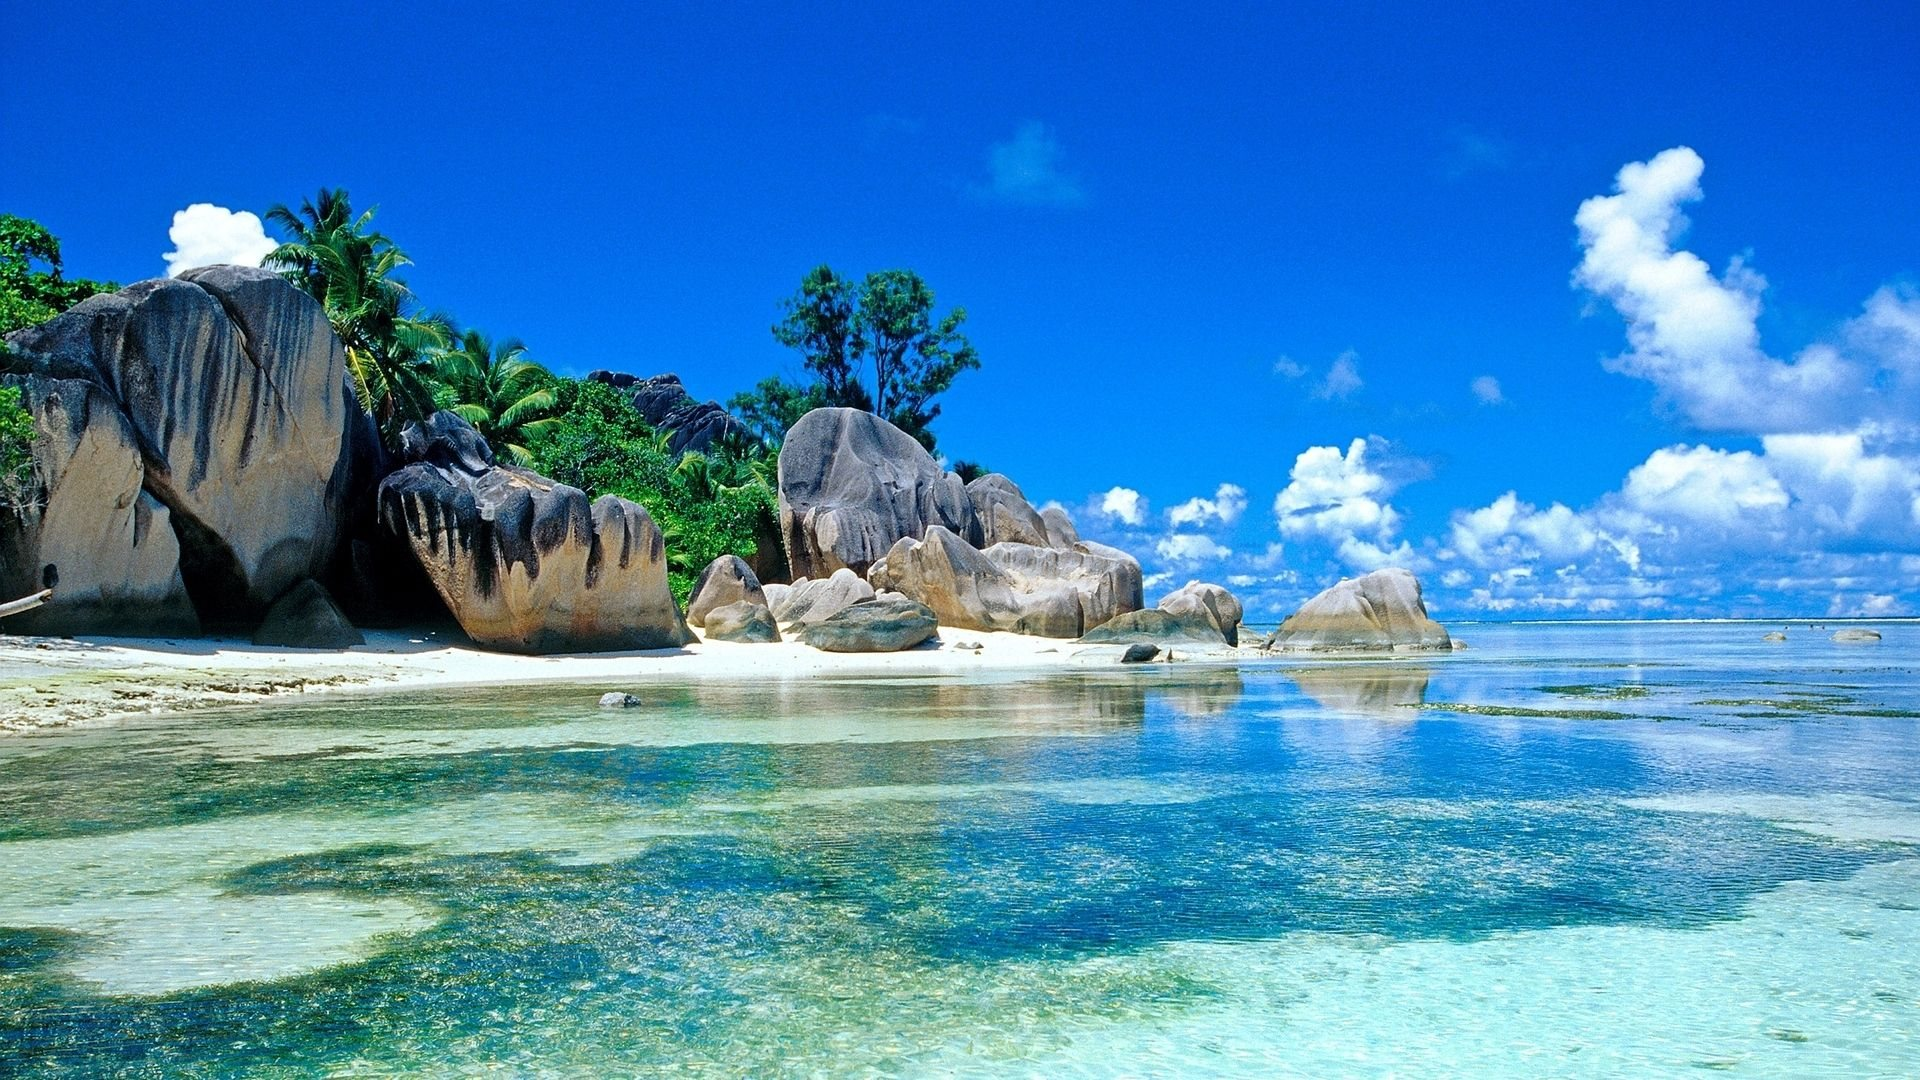 Seychelles Paradise HD Wallpaper Nature Wallpapers 1920x1080